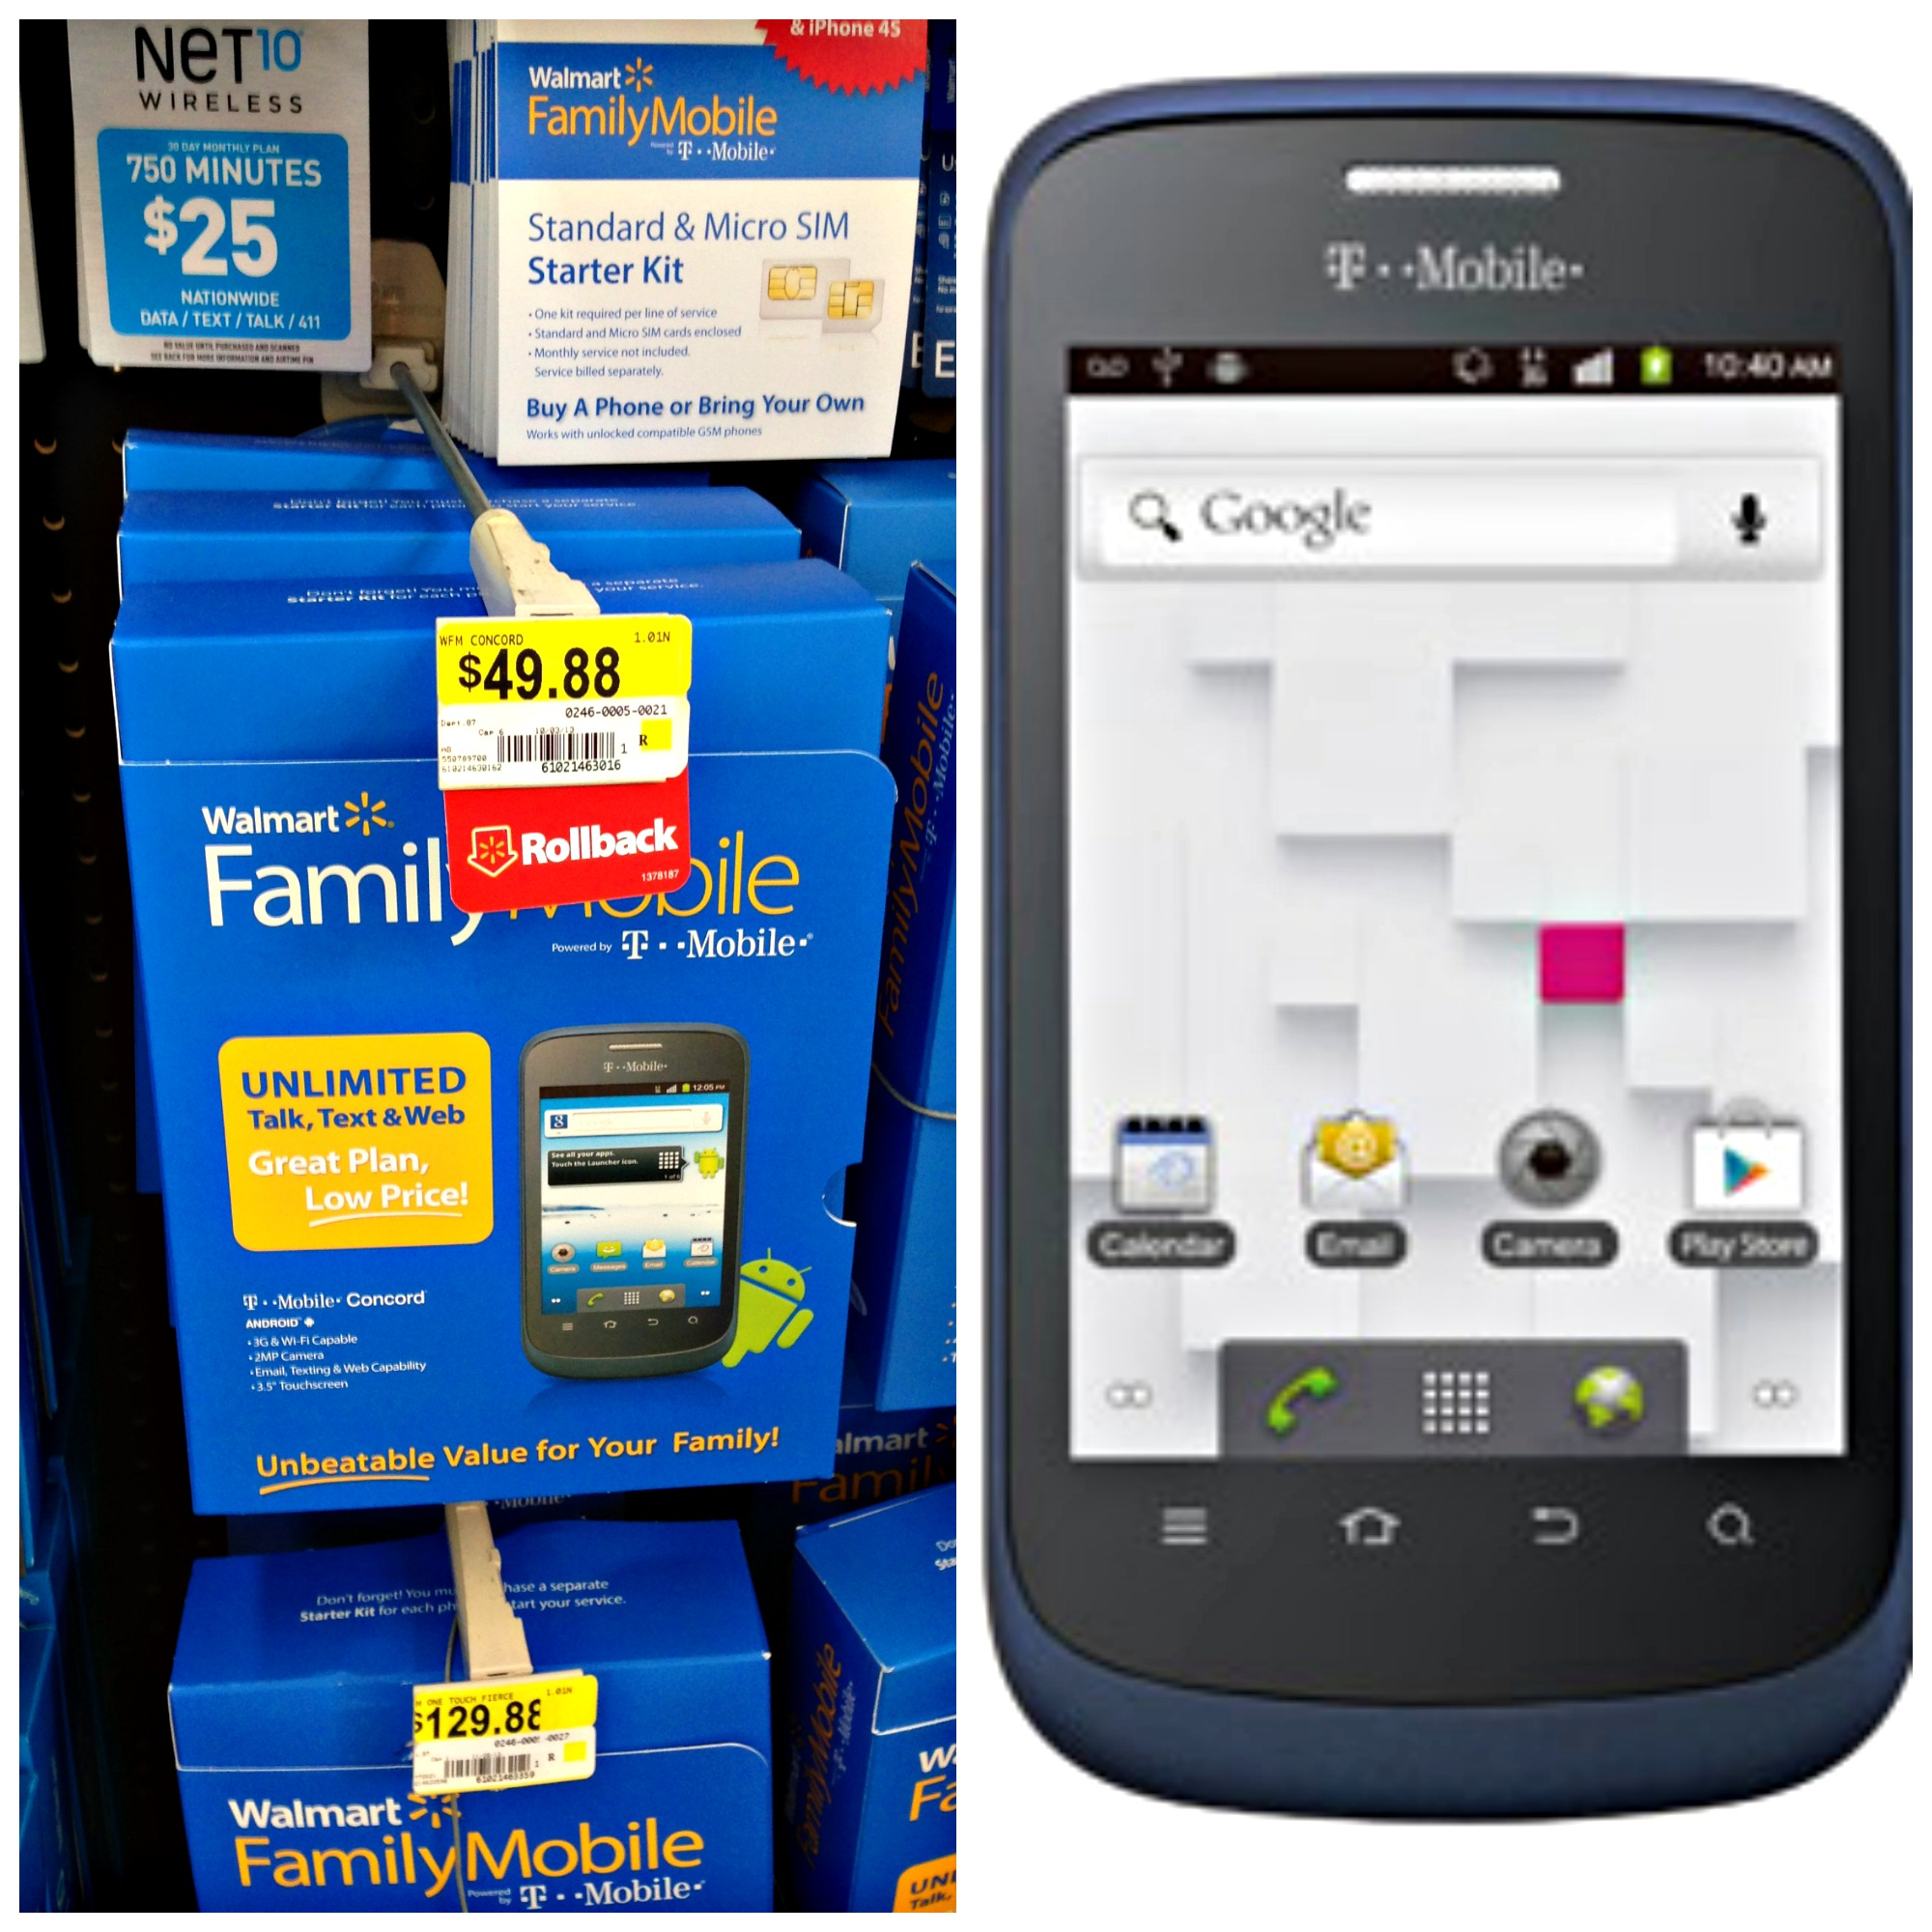 Walmart Family Mobile :: The Best Wireless Plan Gift for the Holiday!